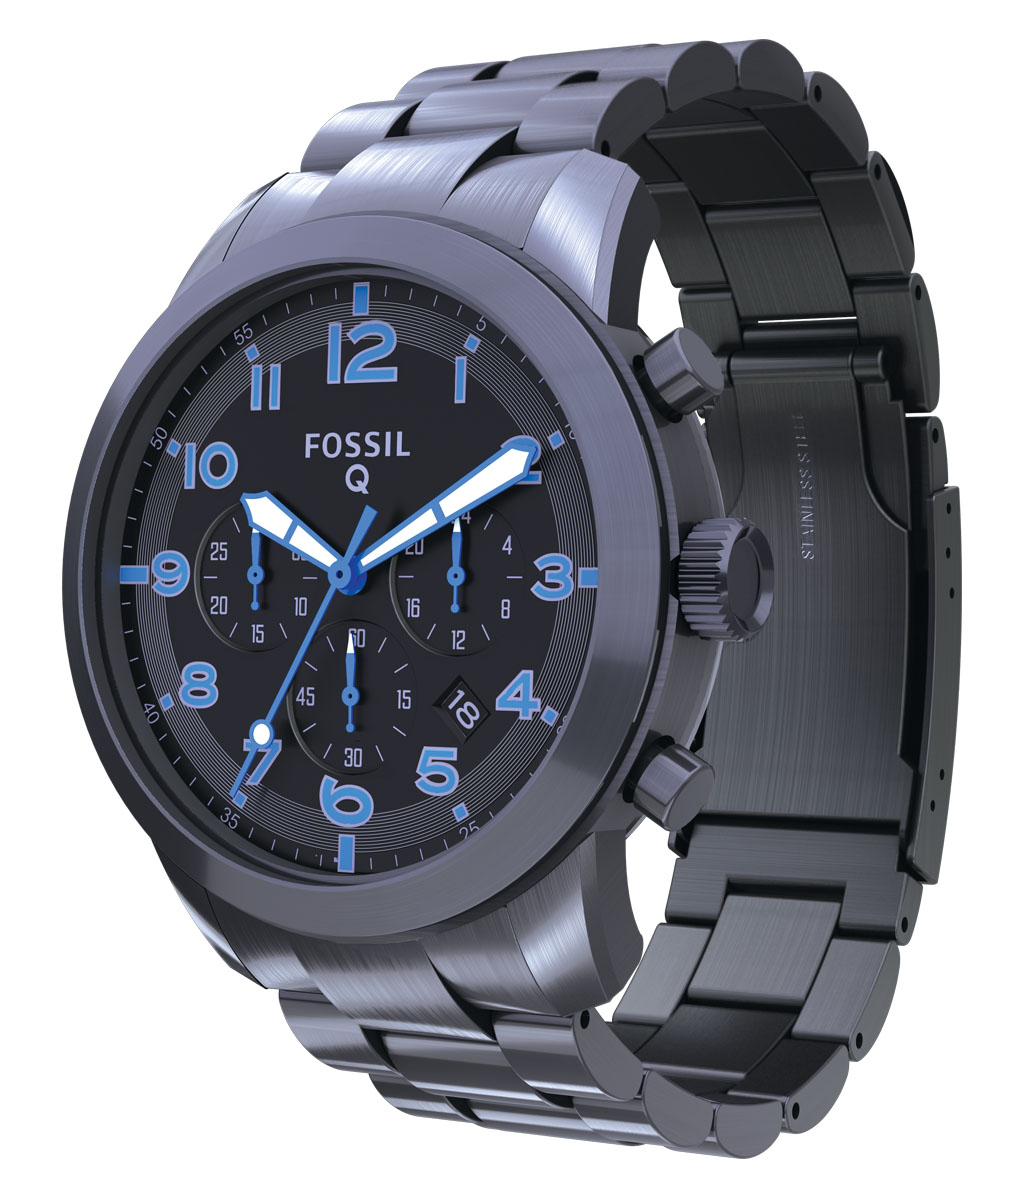 Polygrinder Fossil Group Inc Fossil Q Wearables